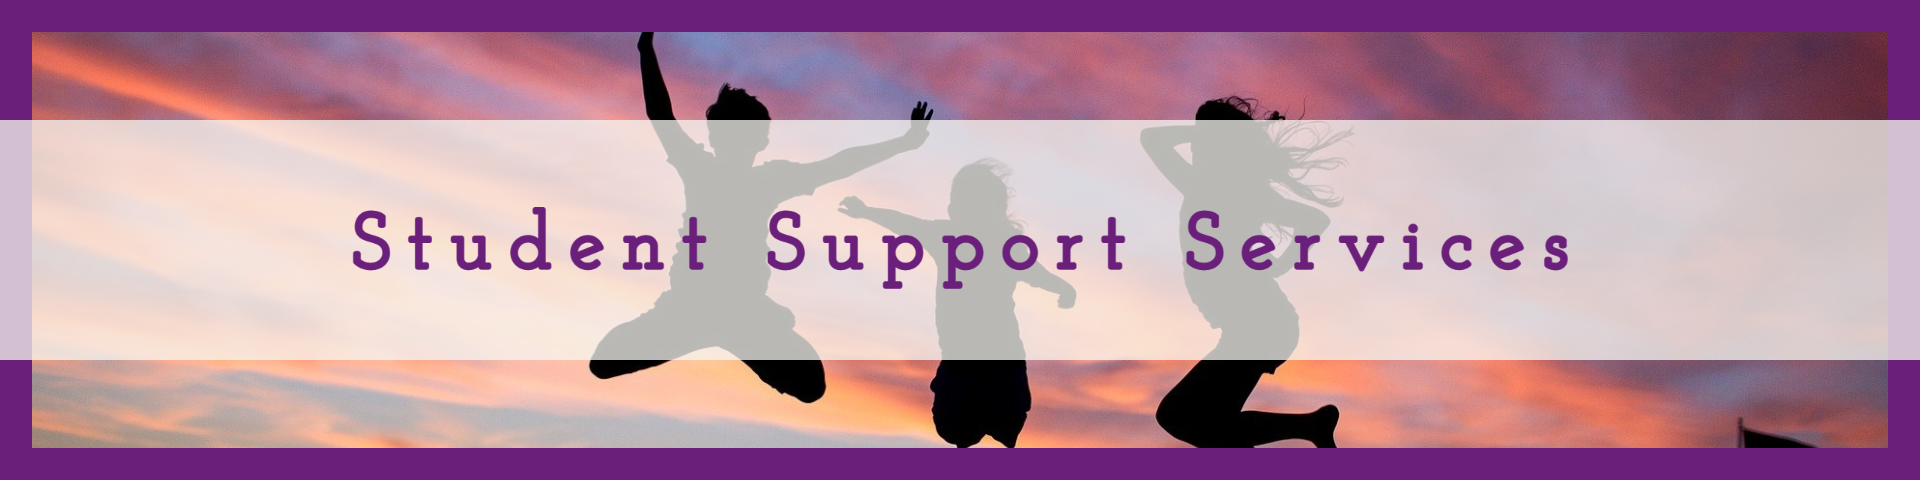 Student Support Services Header